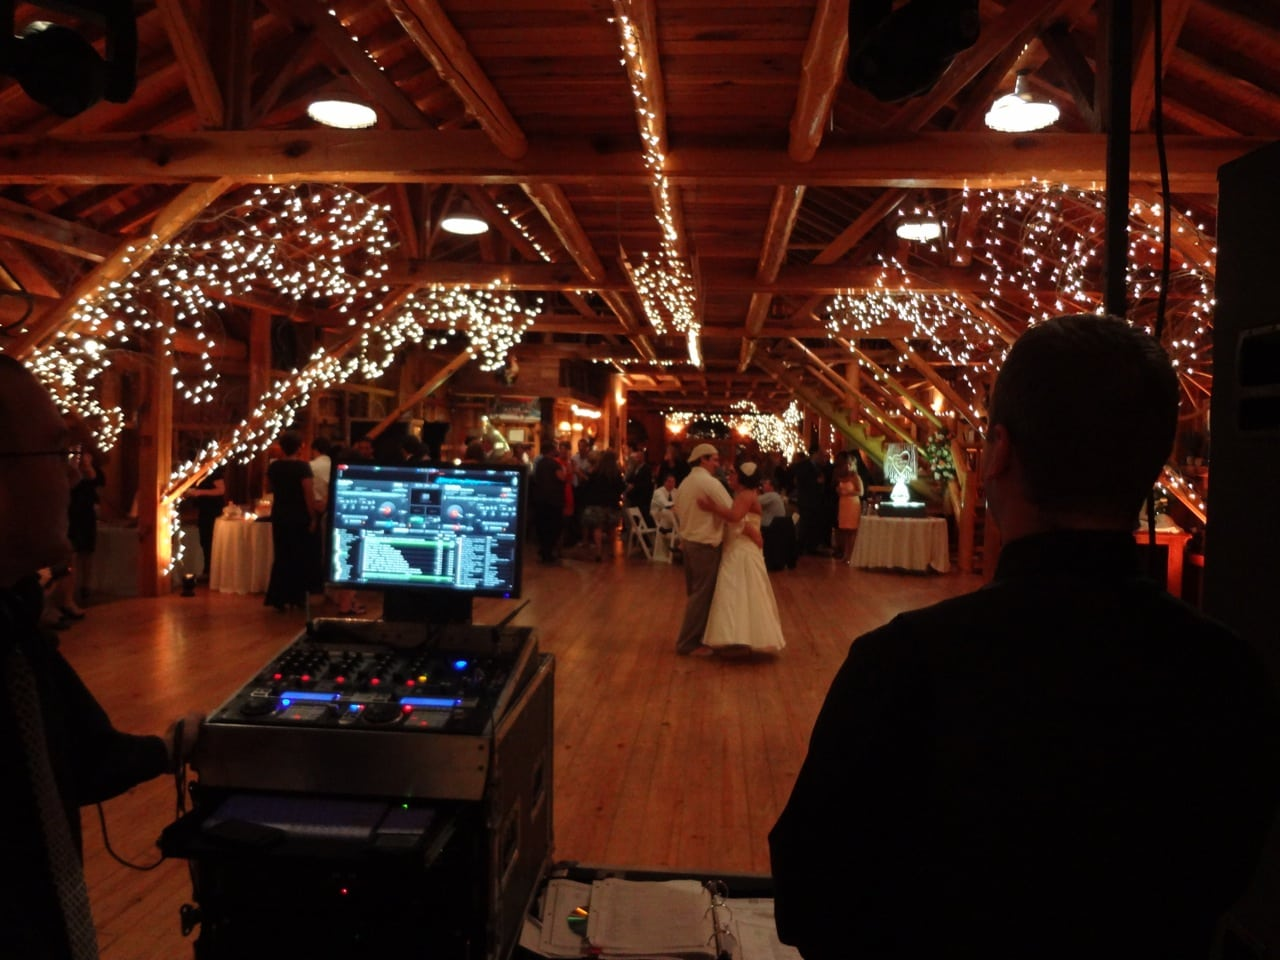 wedding event lighting with monogram gobo and entertainment from cleveland djs